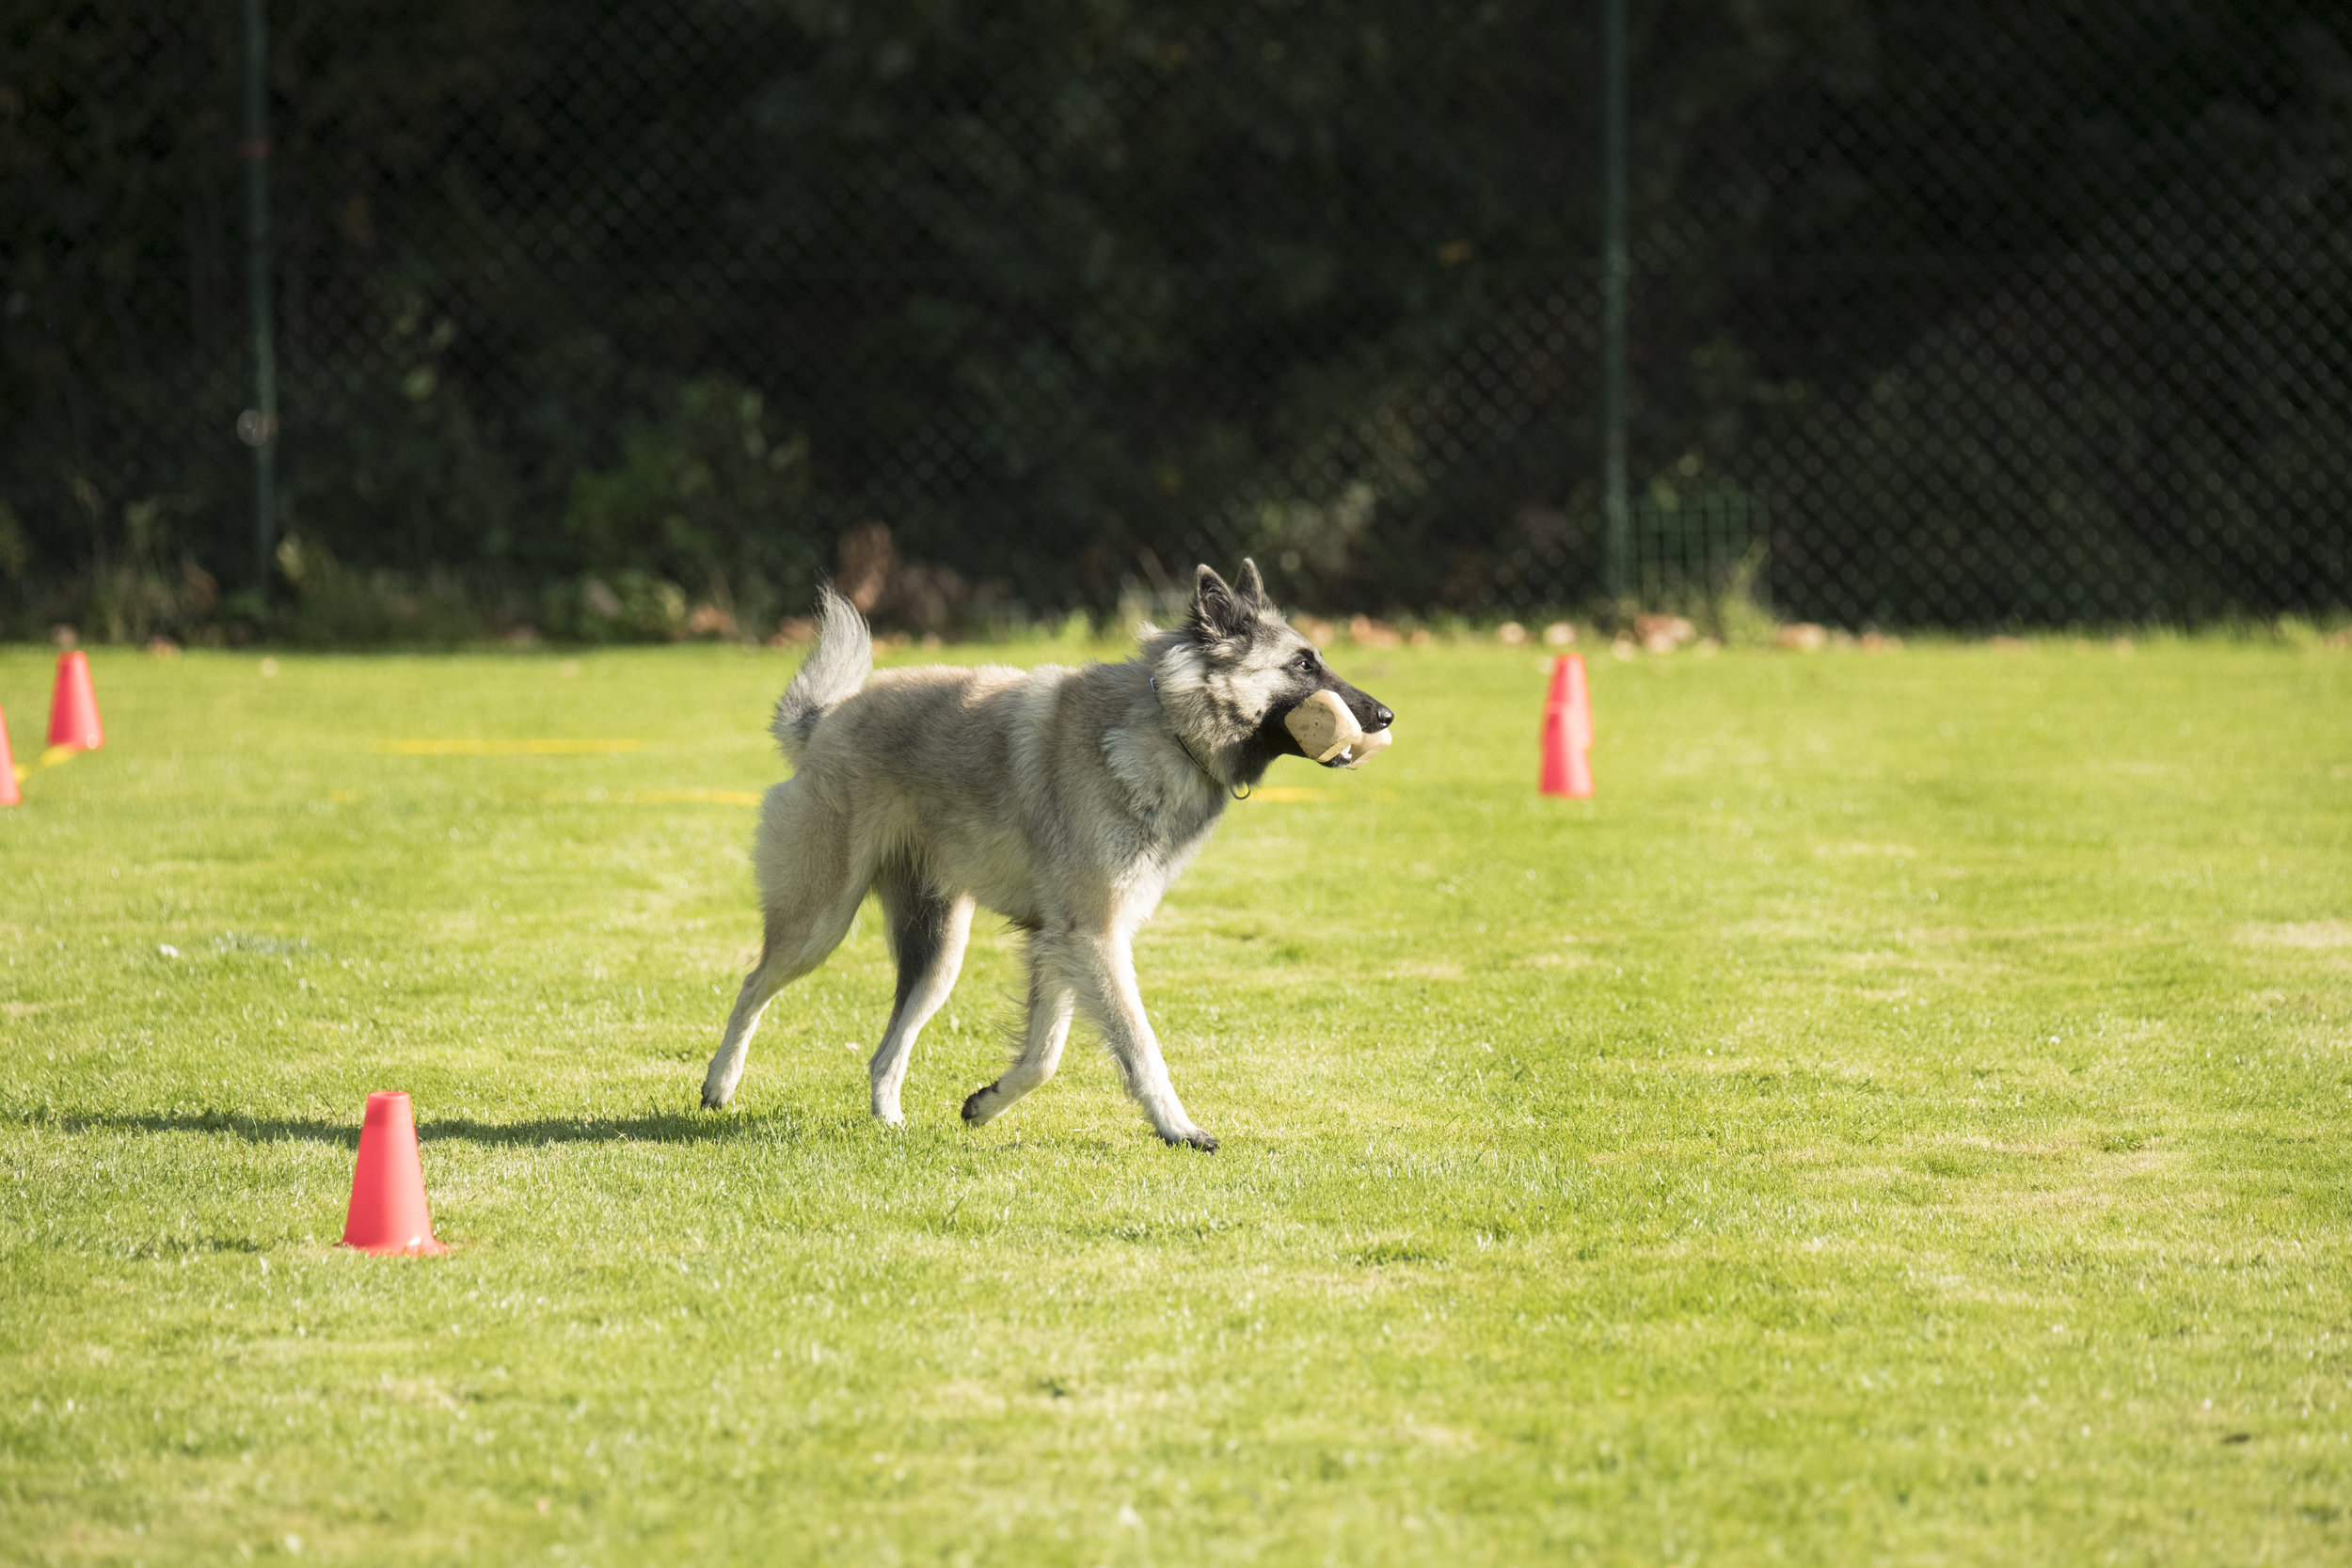 Private Training - Private, one-on-one fitness training with an expert instructor is a fun, efficient way to get your dog into peak condition at a time and place that's most convenient for you. Perfect for agility dogs, working dogs, family dogs and even puppies!